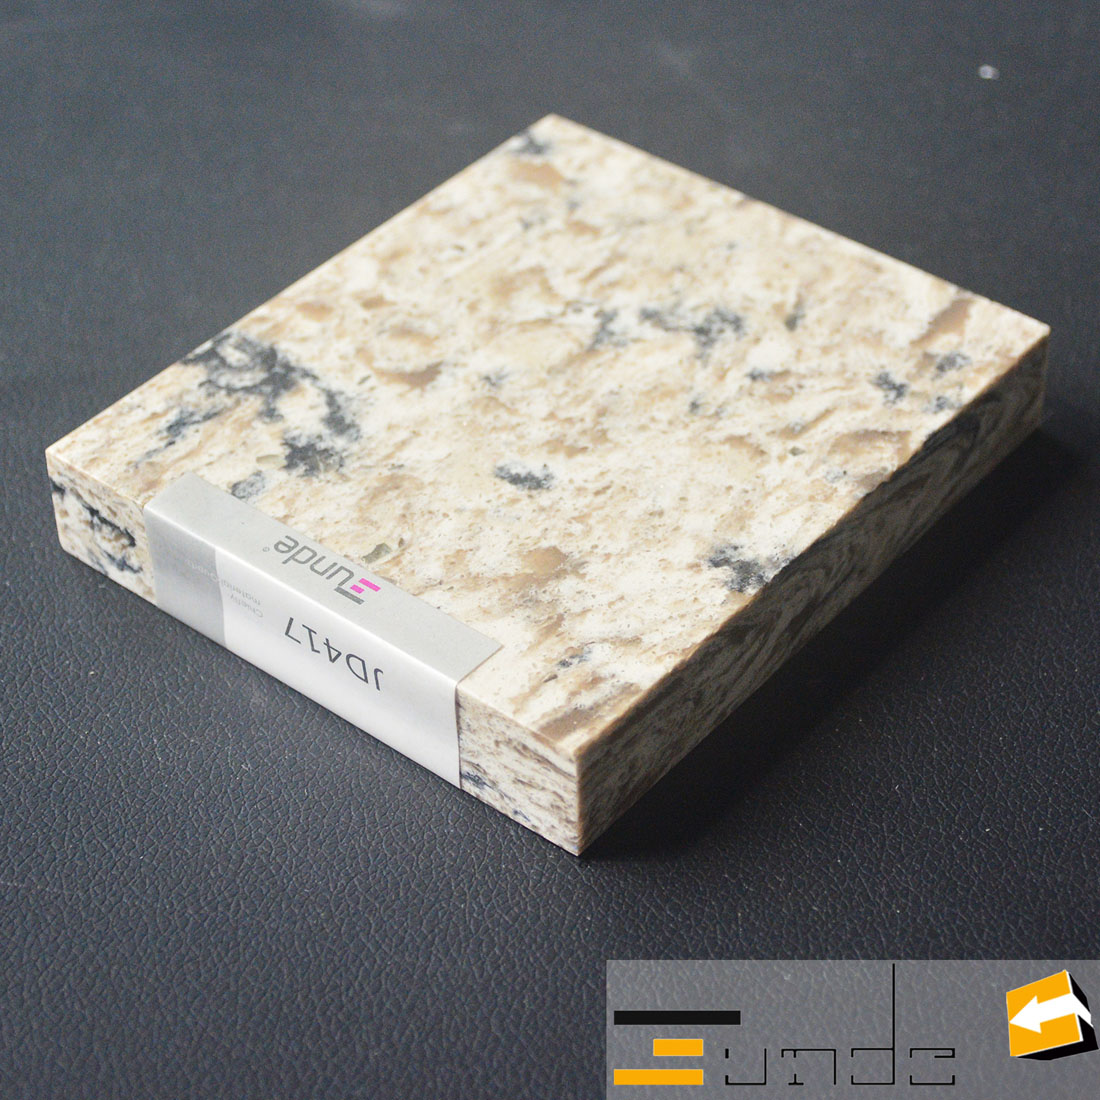 calacatta yellow quartz stone sample jd417-1